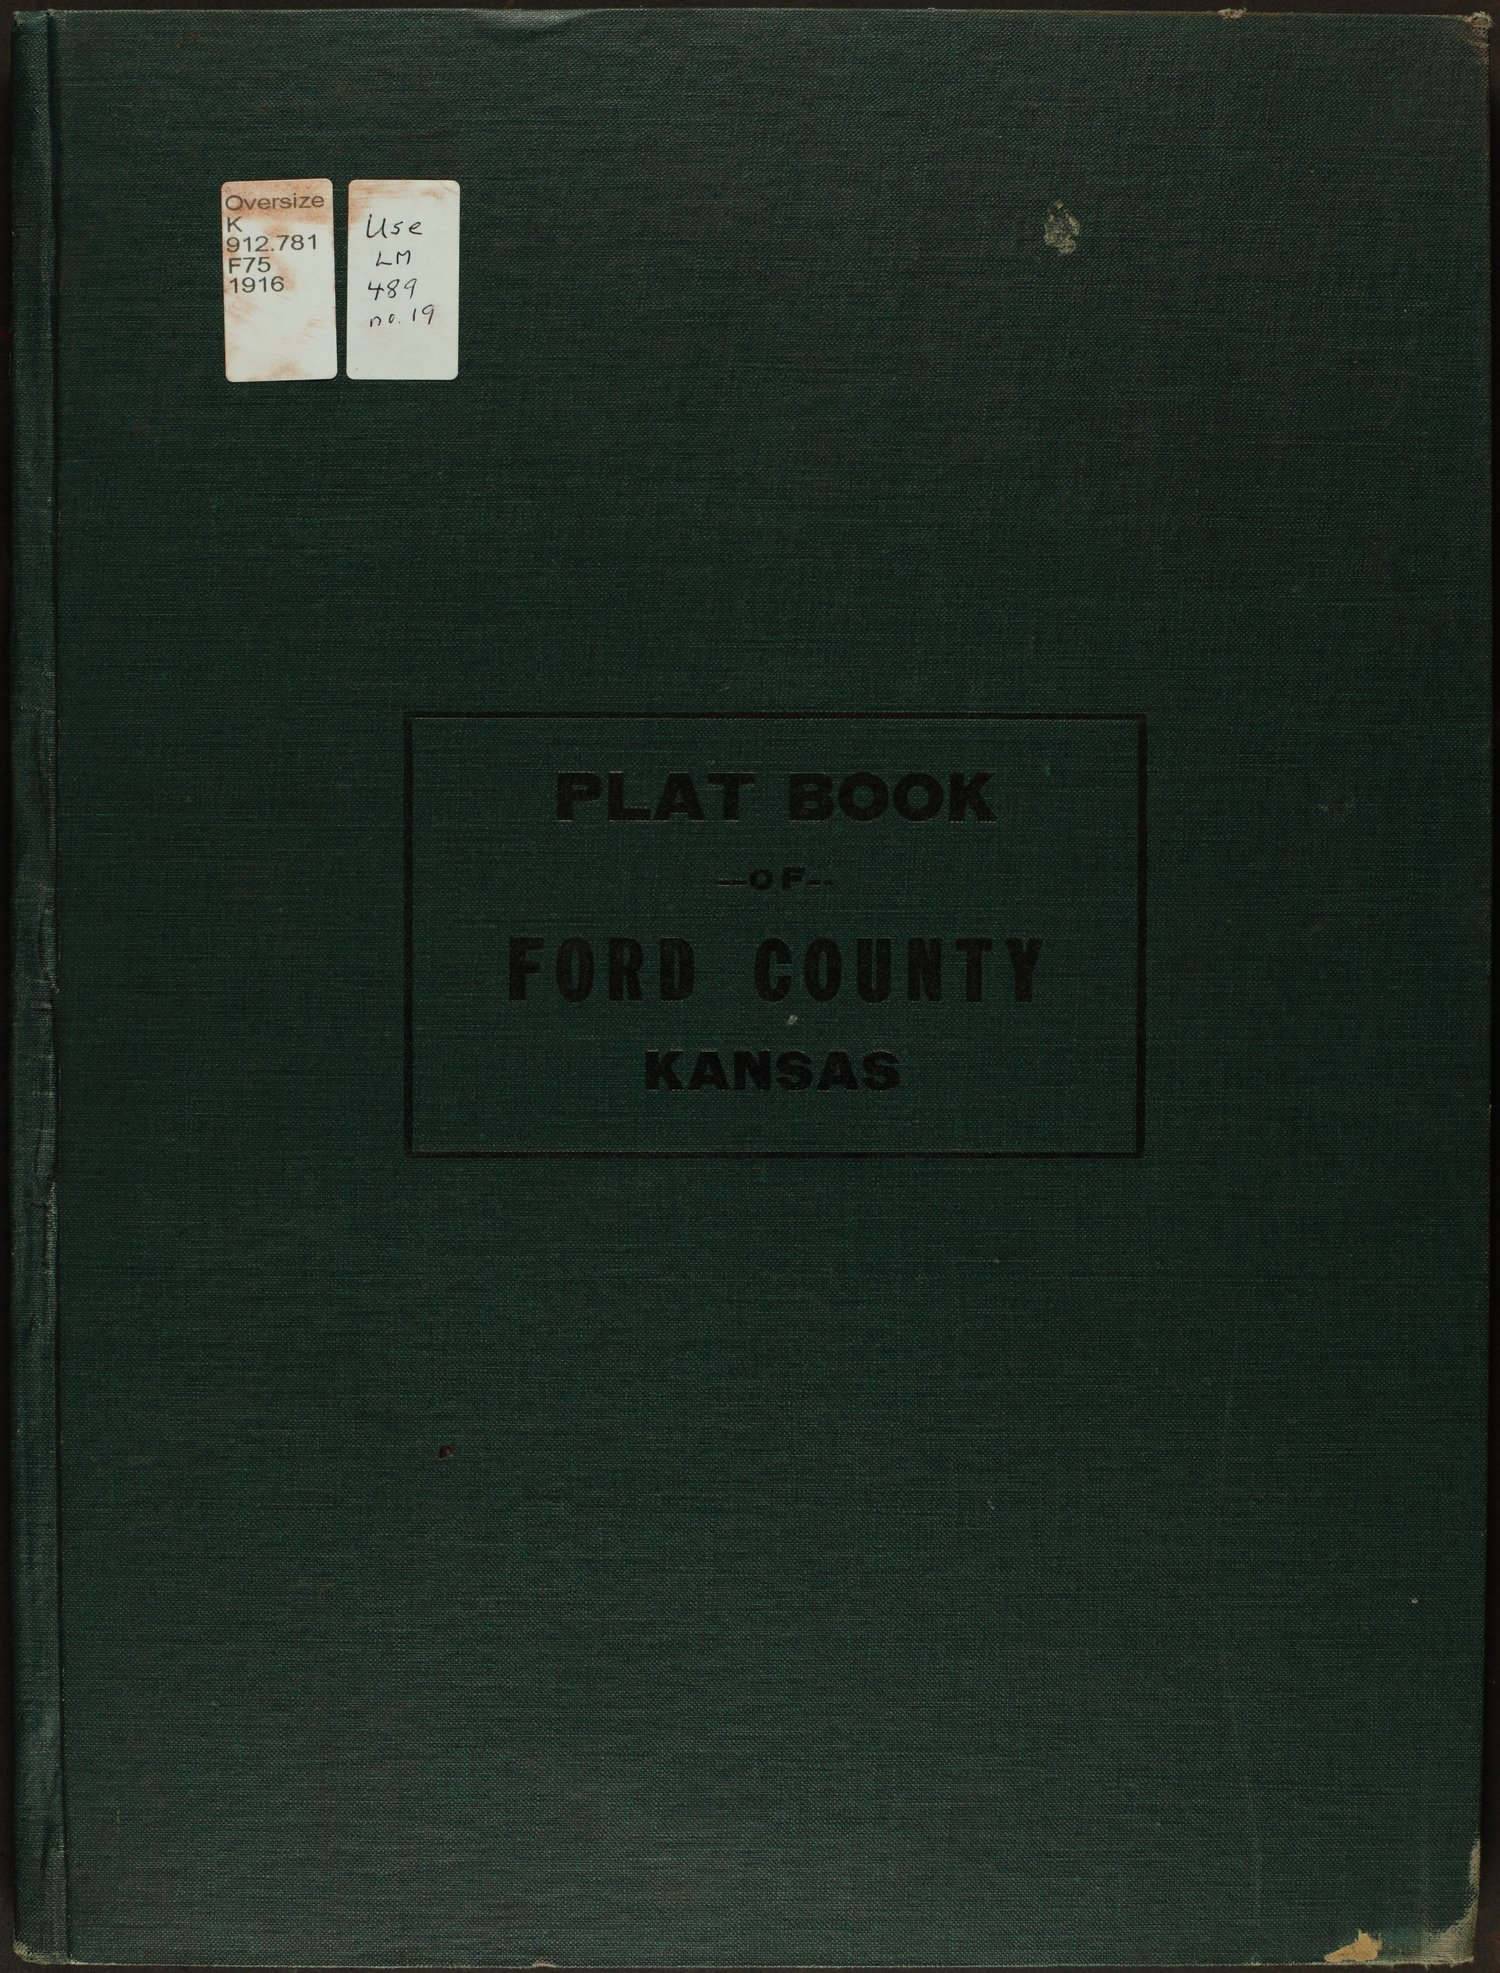 Atlas and plat book of Ford County, Kansas - Front Cover